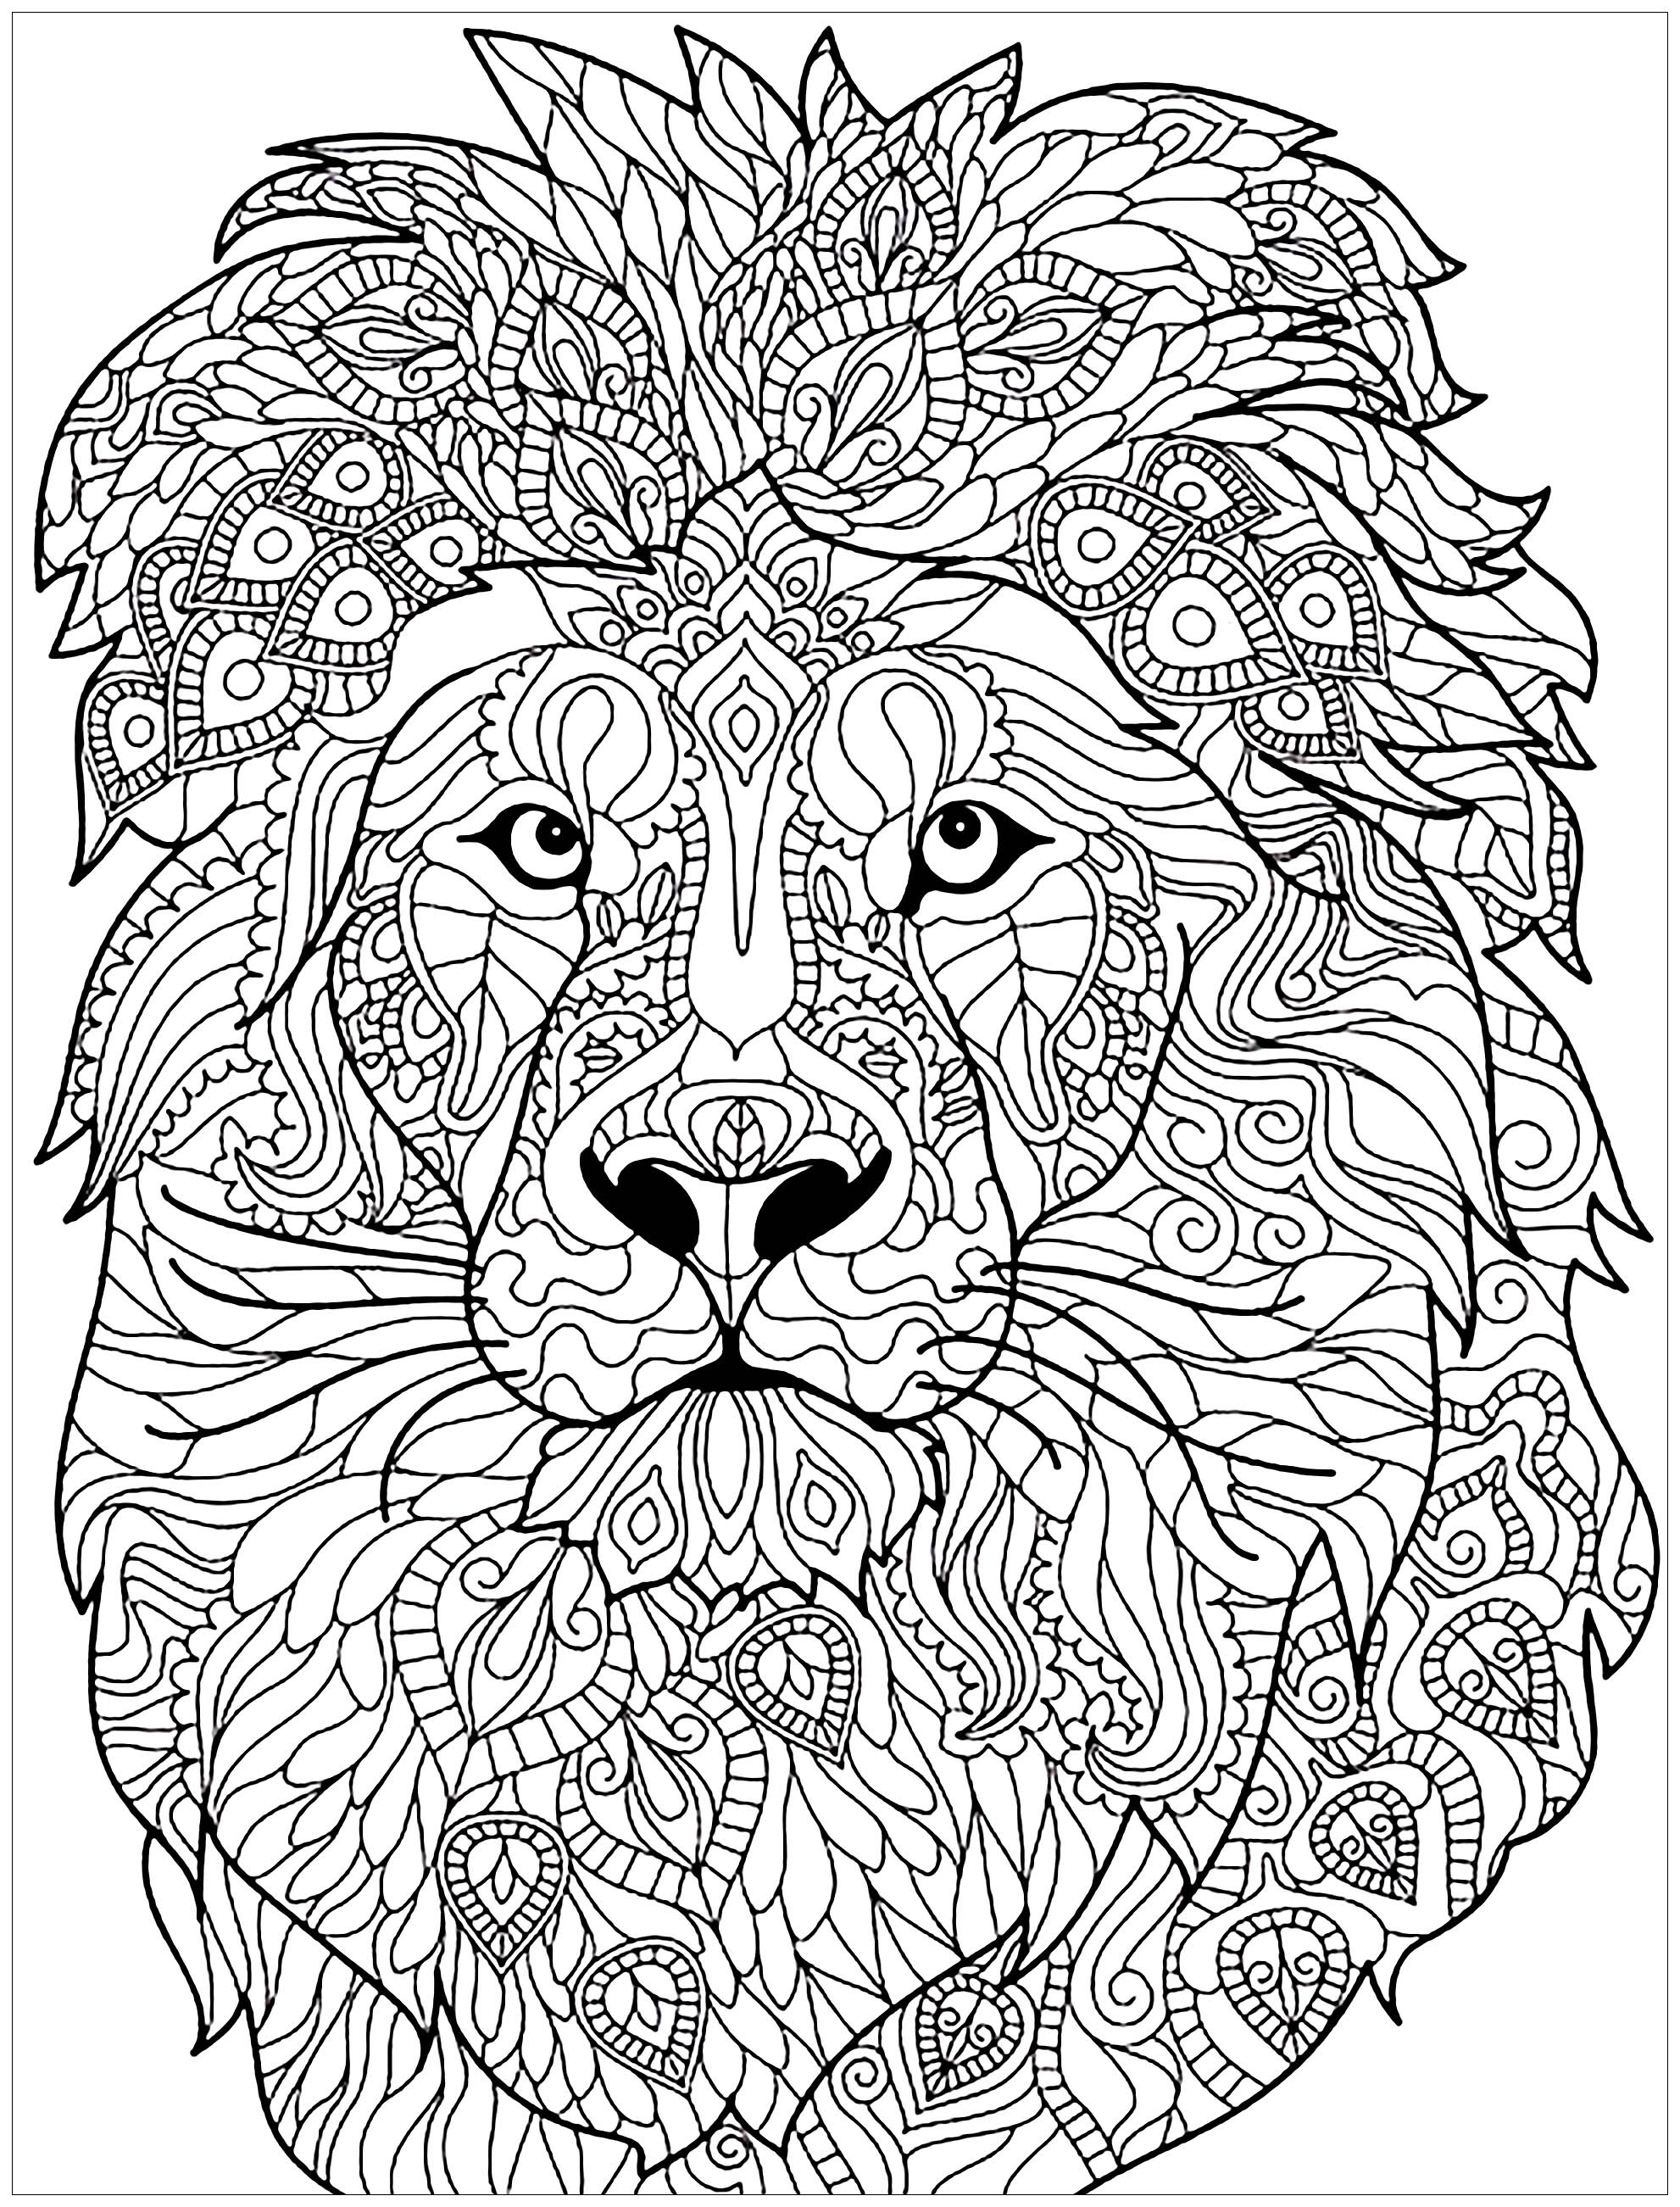 Adult Coloring Pages Lion at GetDrawings | Free download